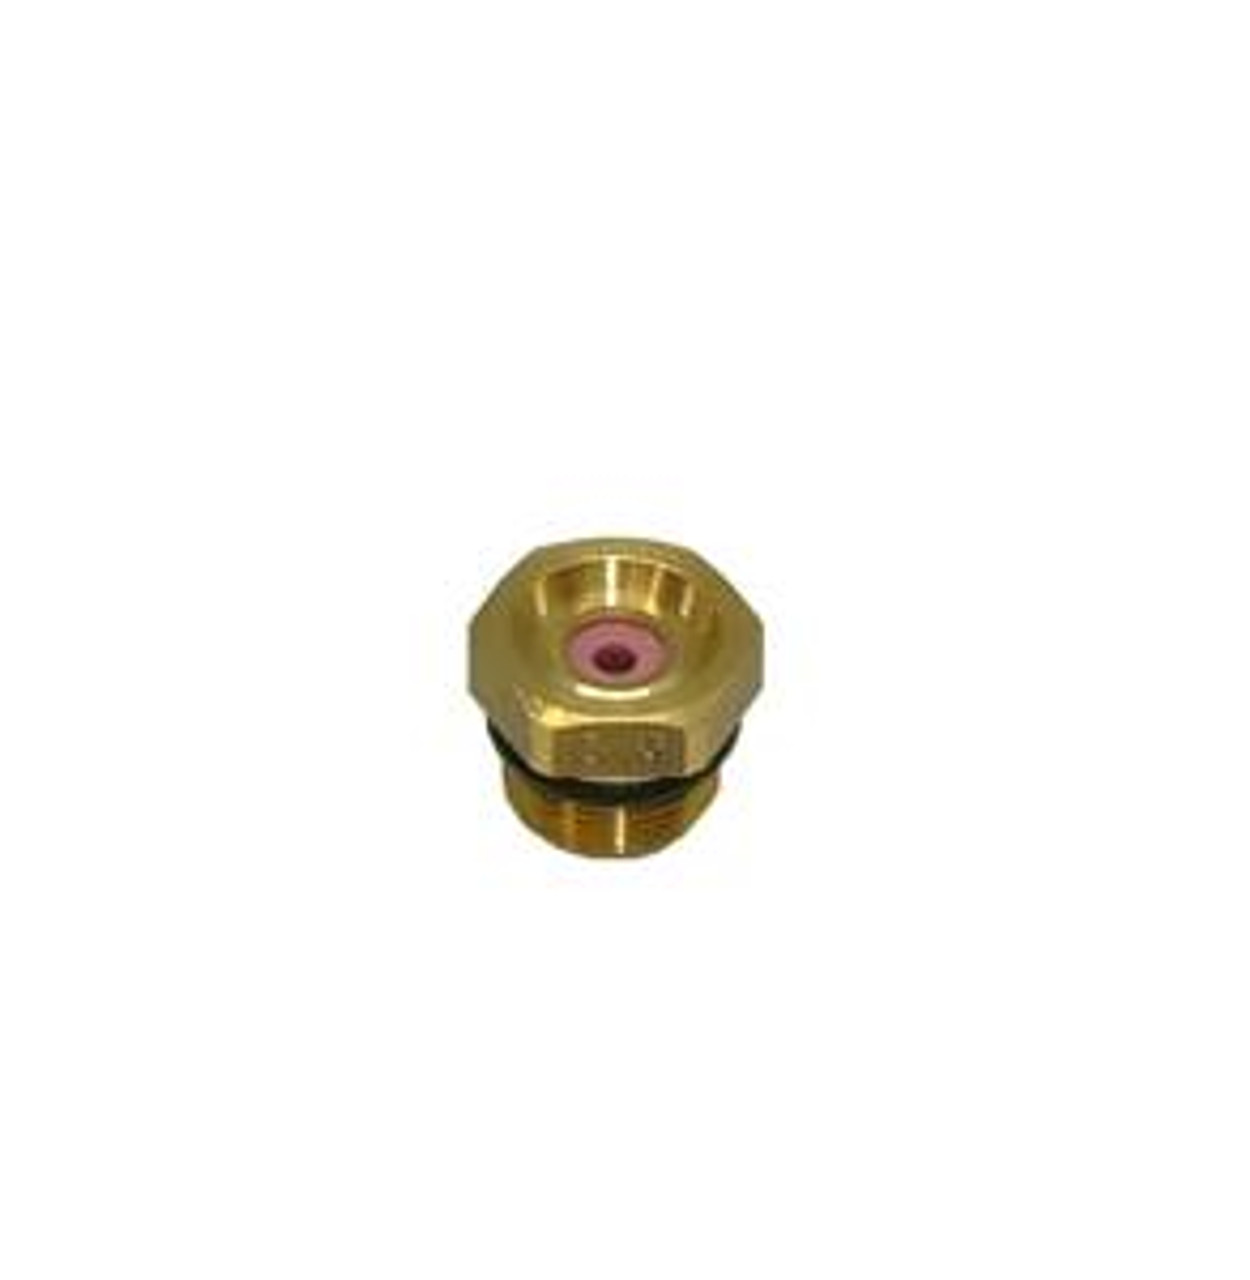 Nozzle for Turbo 400 gun - 2.0mm ceramic